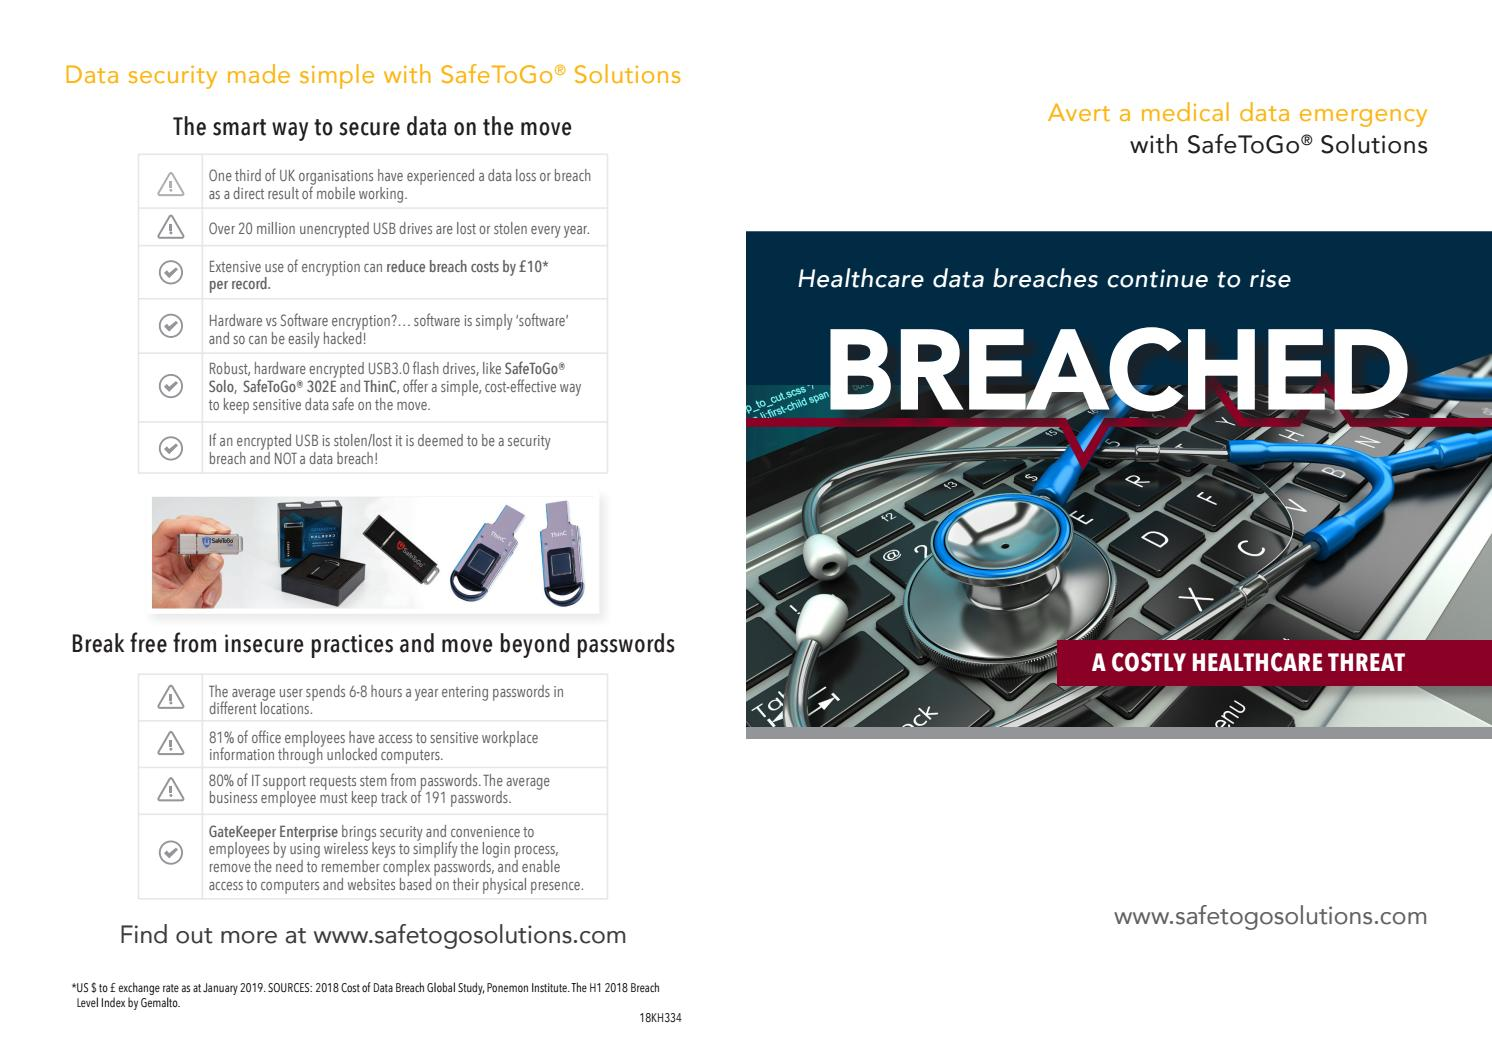 Breached - a costly healthcare threat by Cardwave Services Ltd - issuu